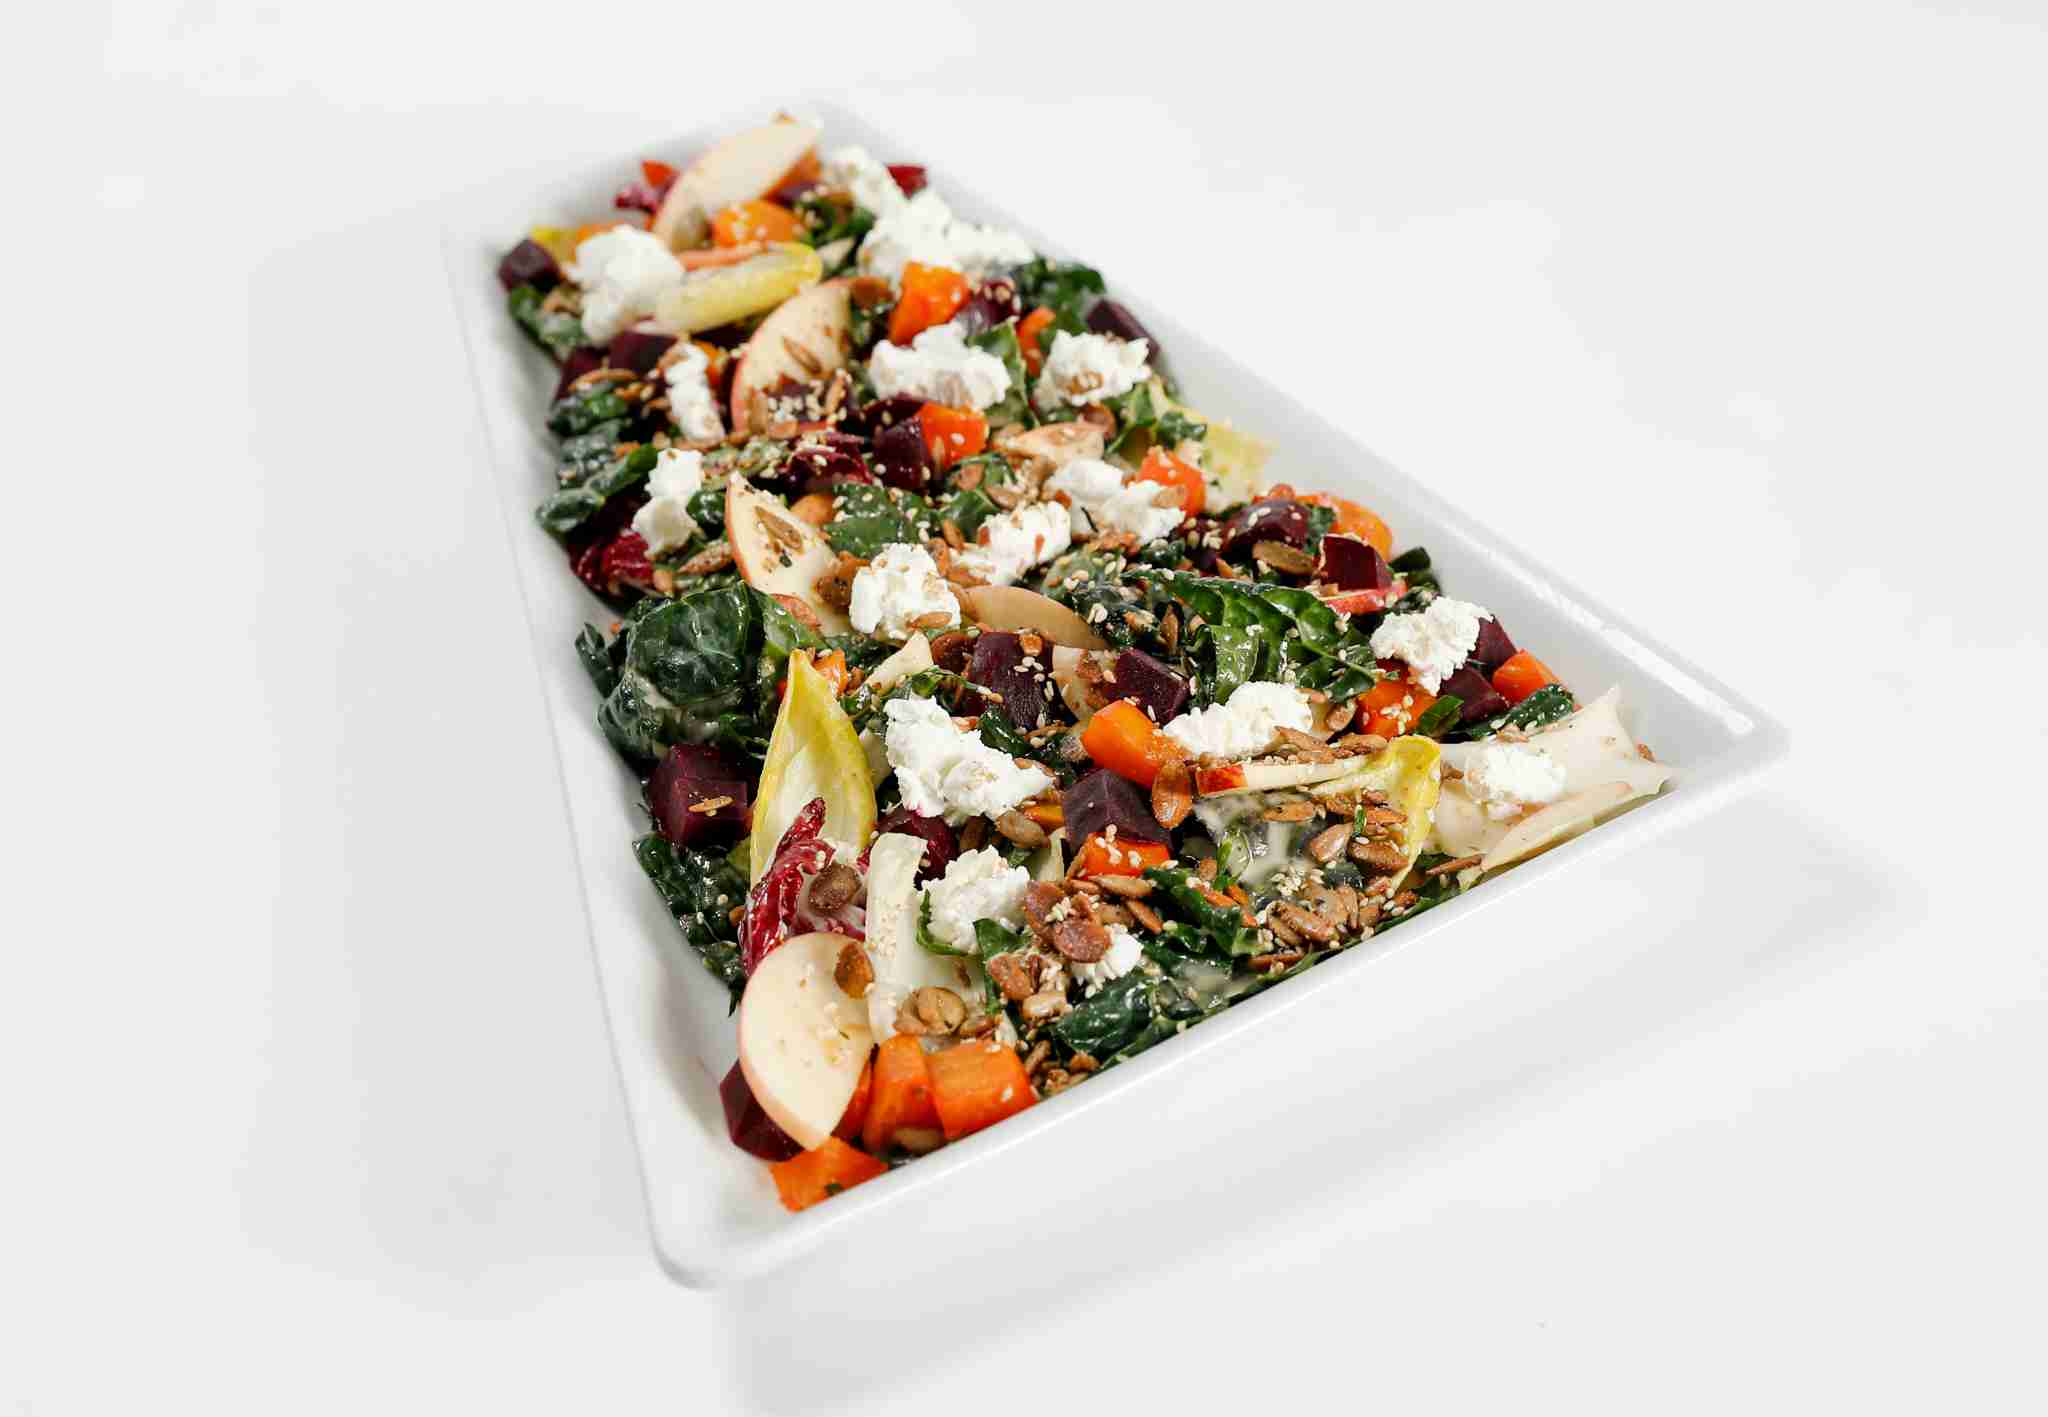 Tuscan kale salad. (Photo courtesy of American Airlines.)